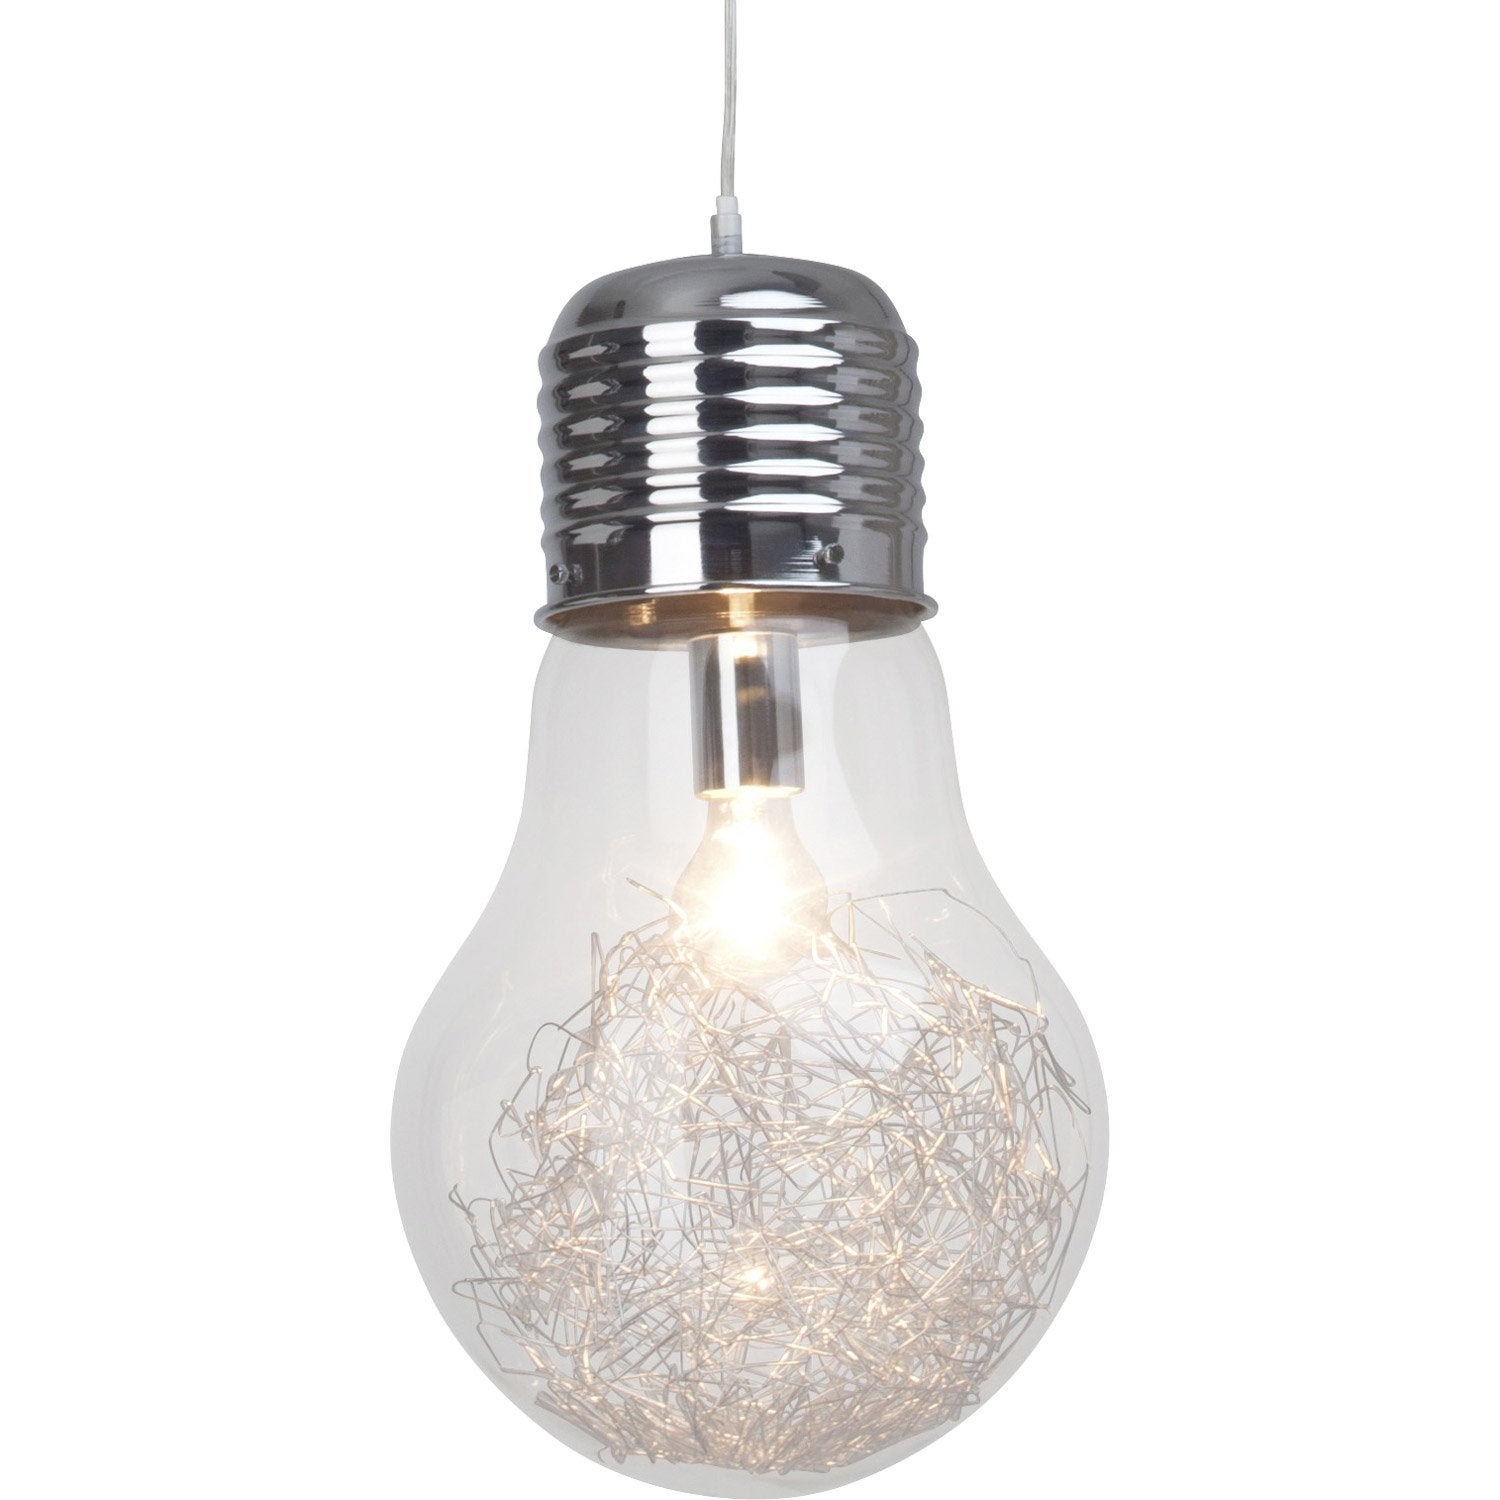 Suspension e27 design bulb verre transparent 1 x 60 w - Lampe baladeuse leroy merlin ...